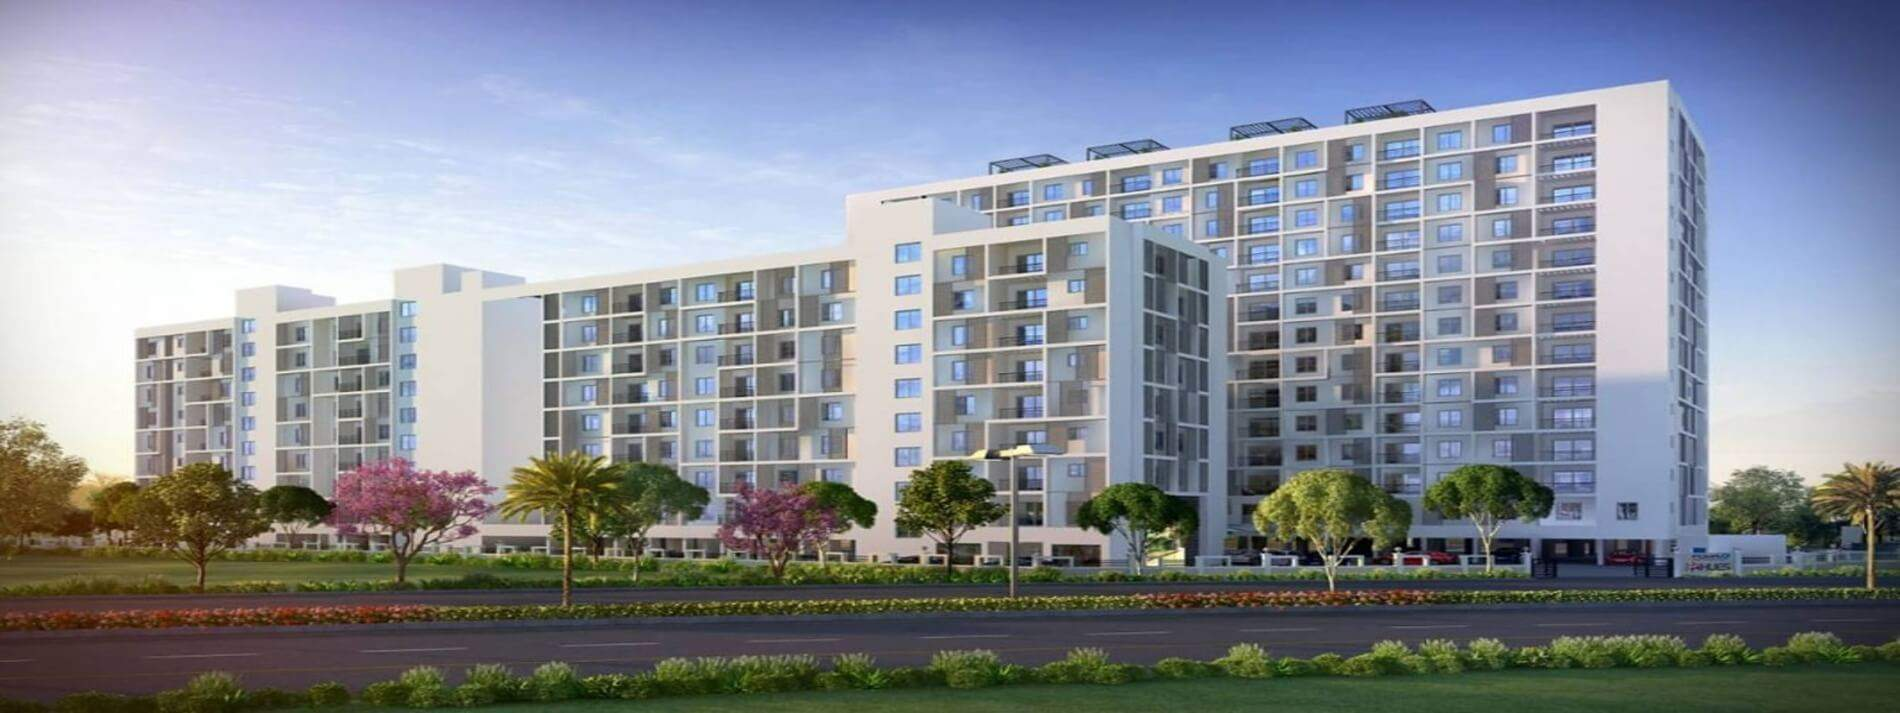 2,3 BHK Flats for sale in Porur